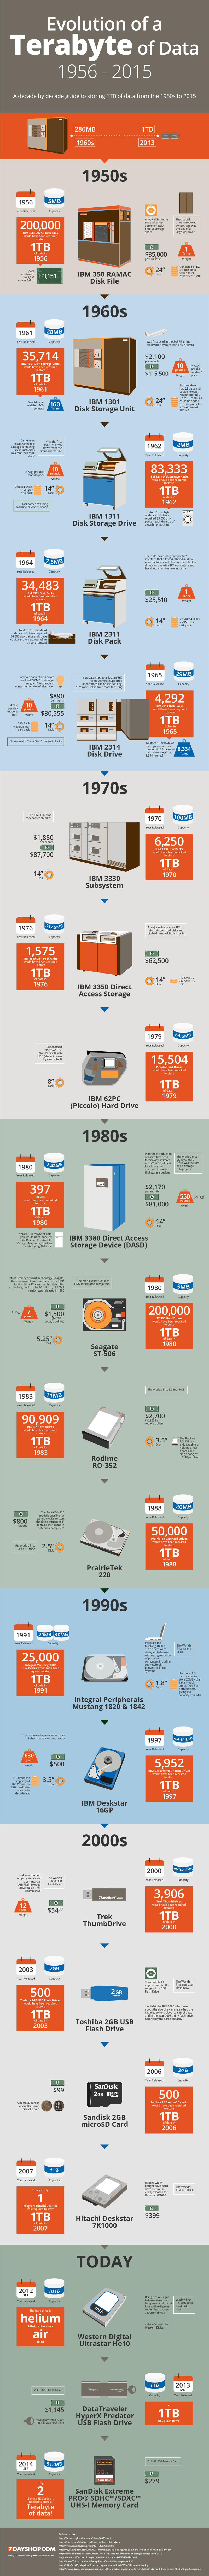 Evolution of a Terabyte of Data - 7DayShop 800px